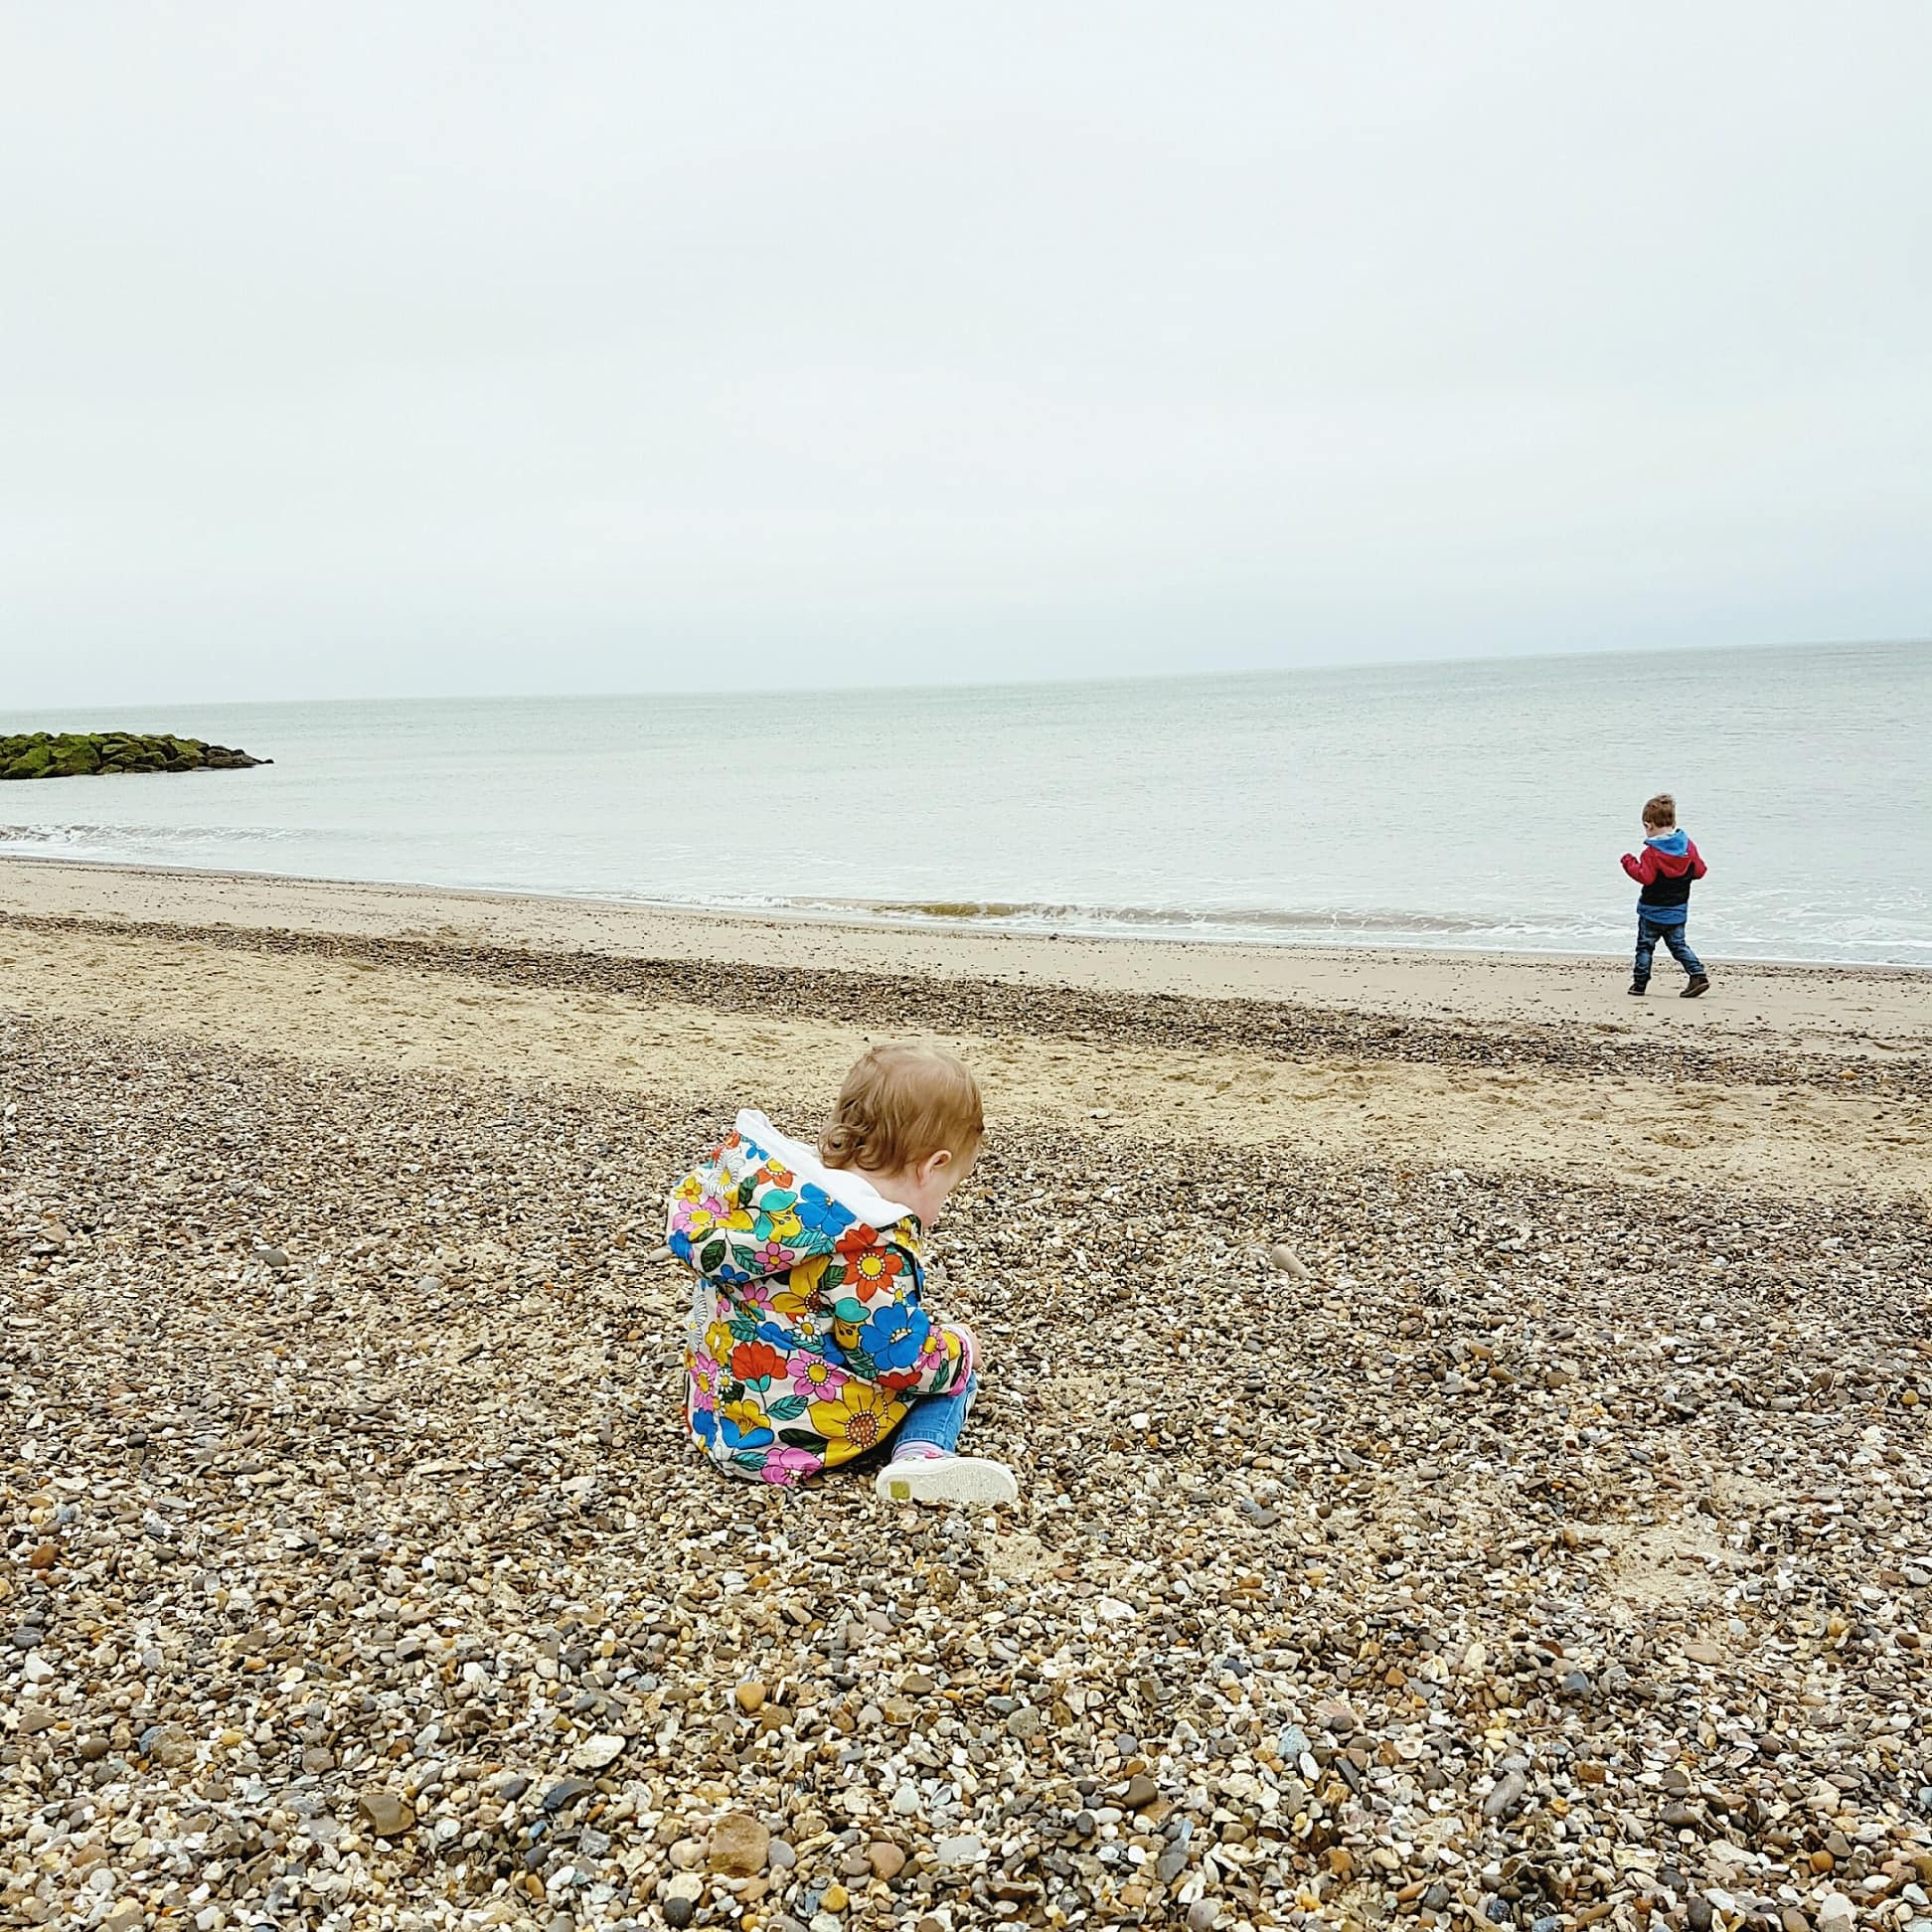 A baby plays on the beach with a toddler in the distane